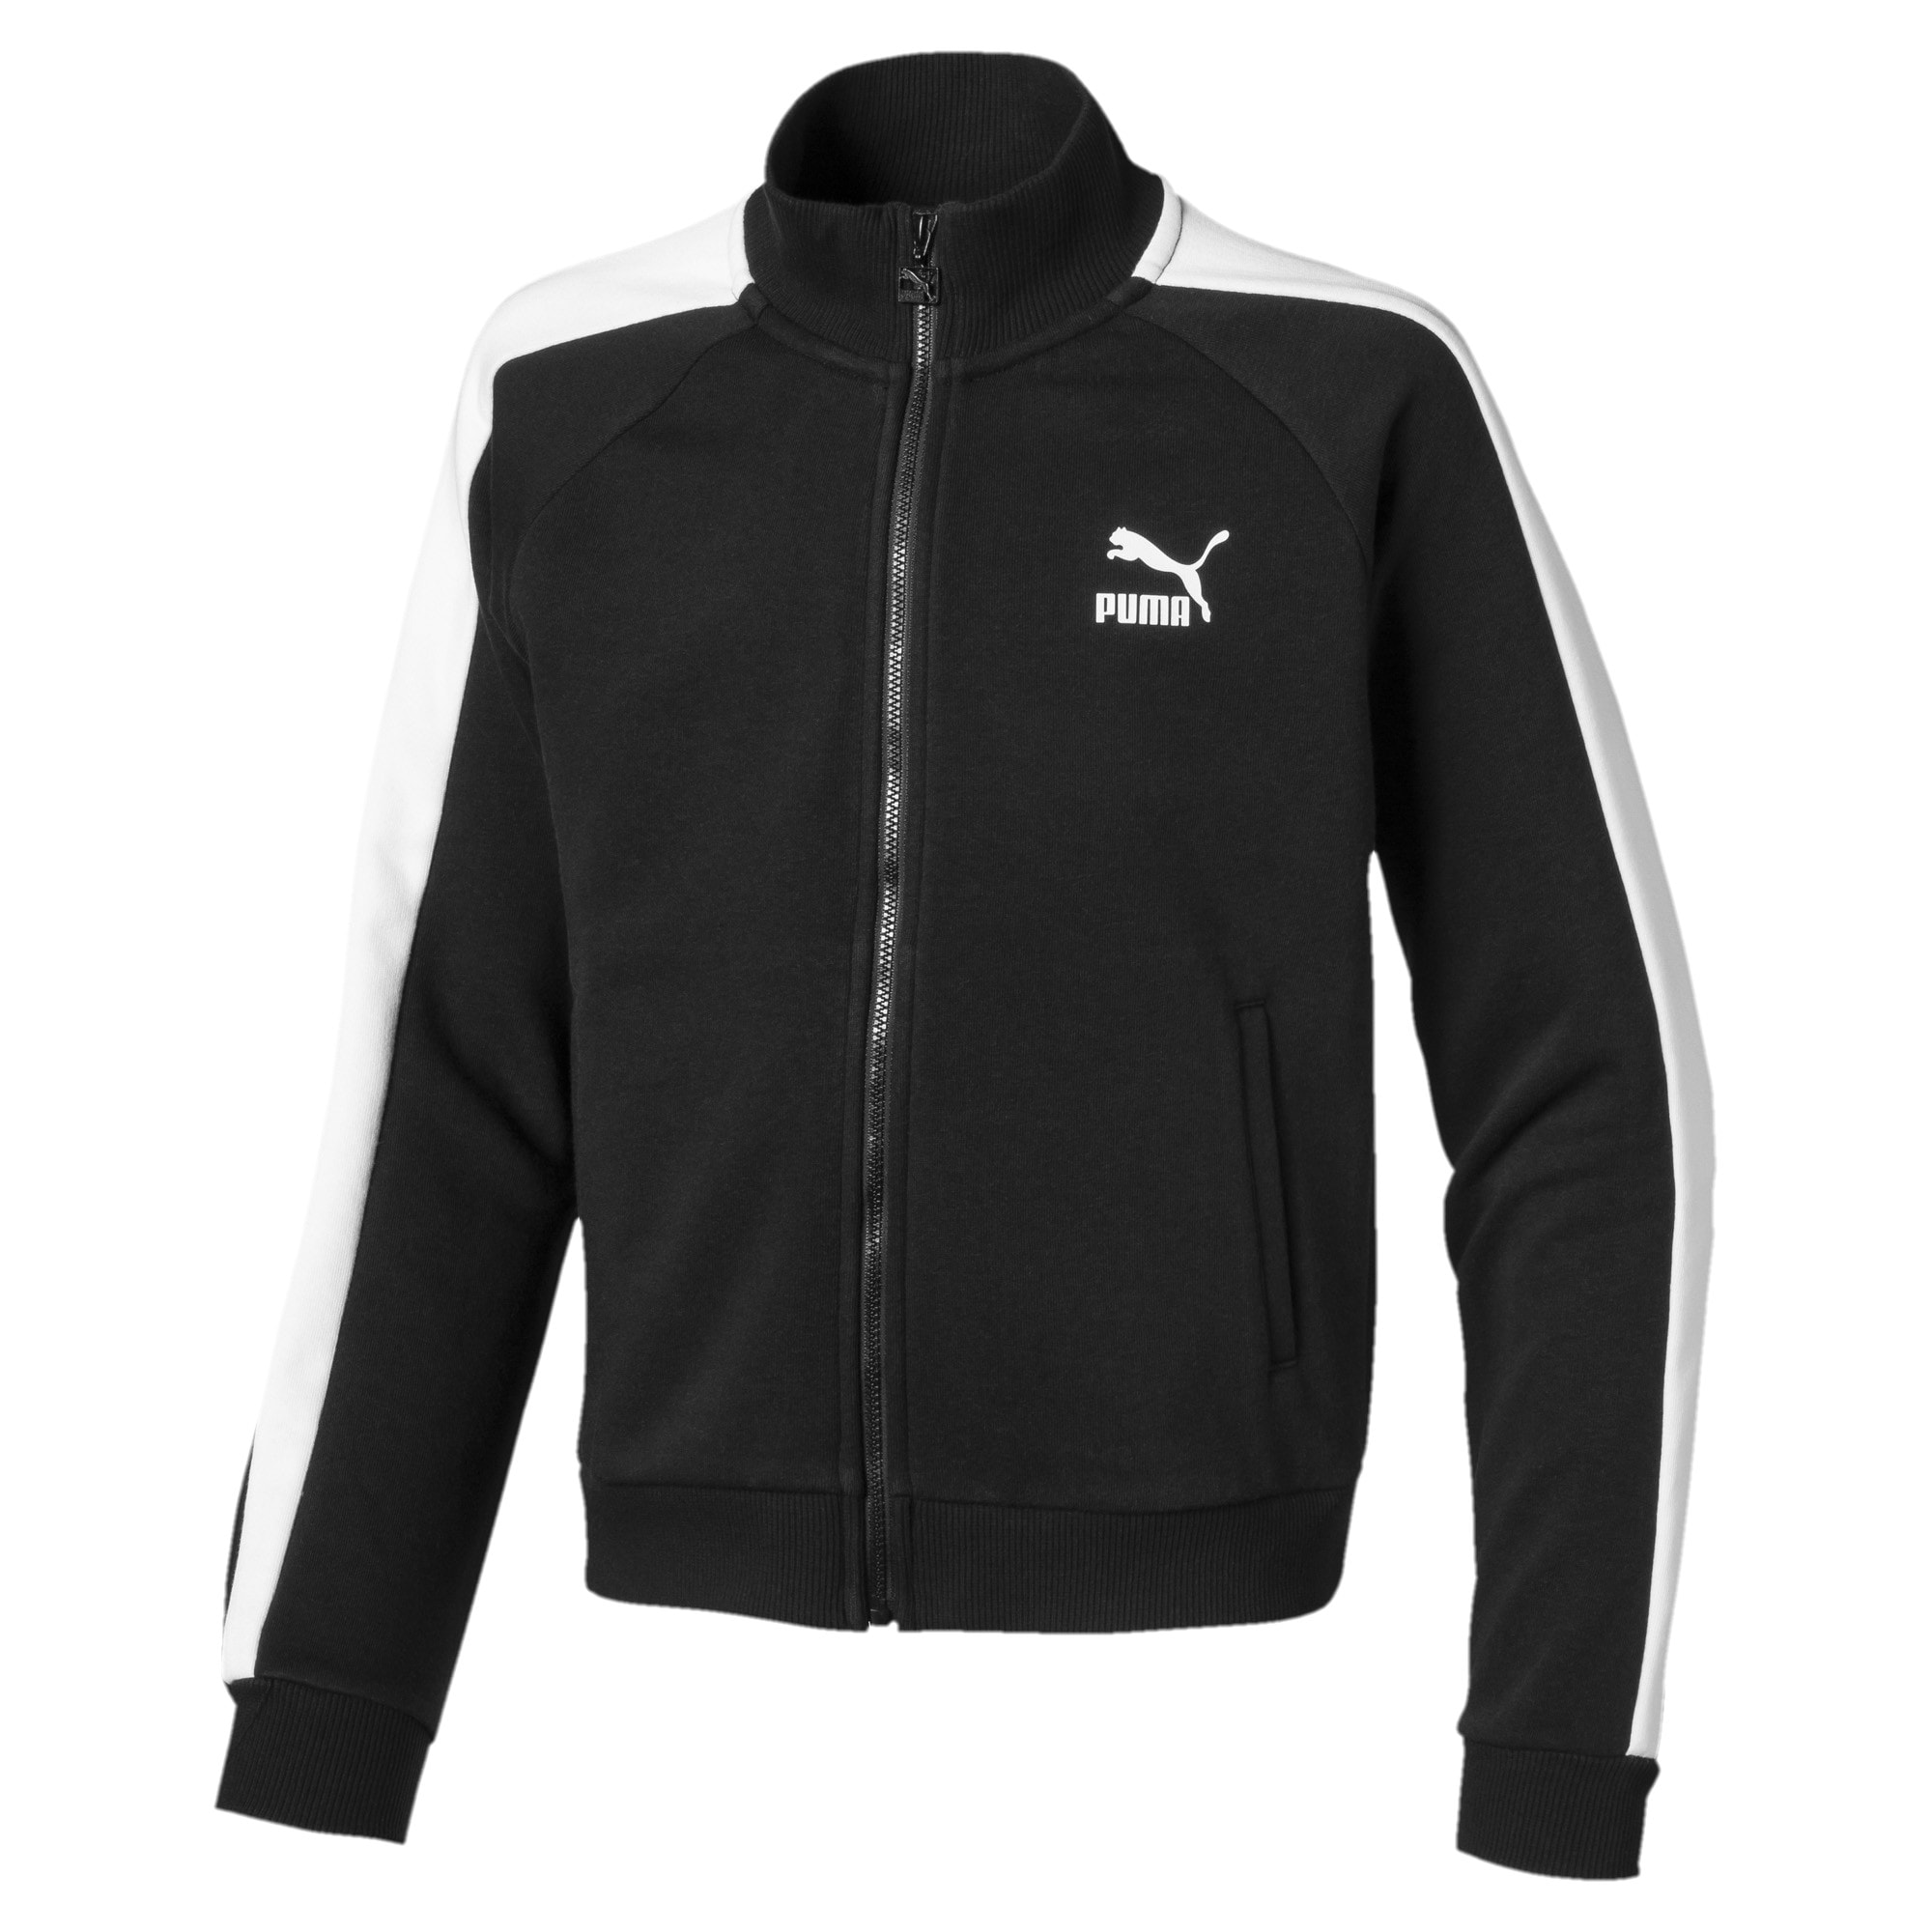 Thumbnail 1 of Classics T7 Girls' Sweat Jacket, Puma Black, medium